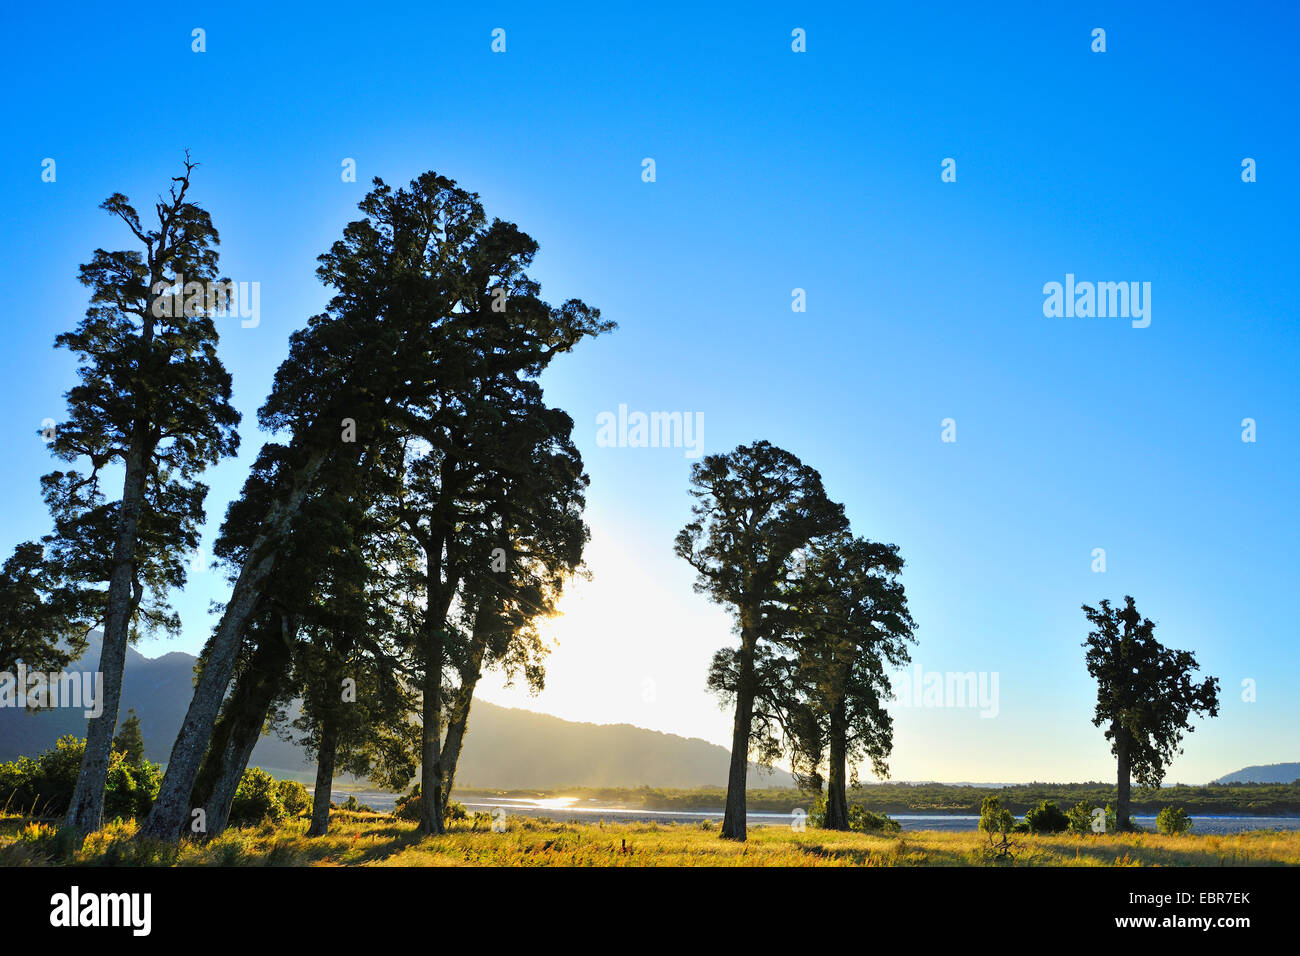 Countryside with Trees in Summer, State Highway 6, Harihari, West Coast, New Zealand, Southern Island - Stock Image